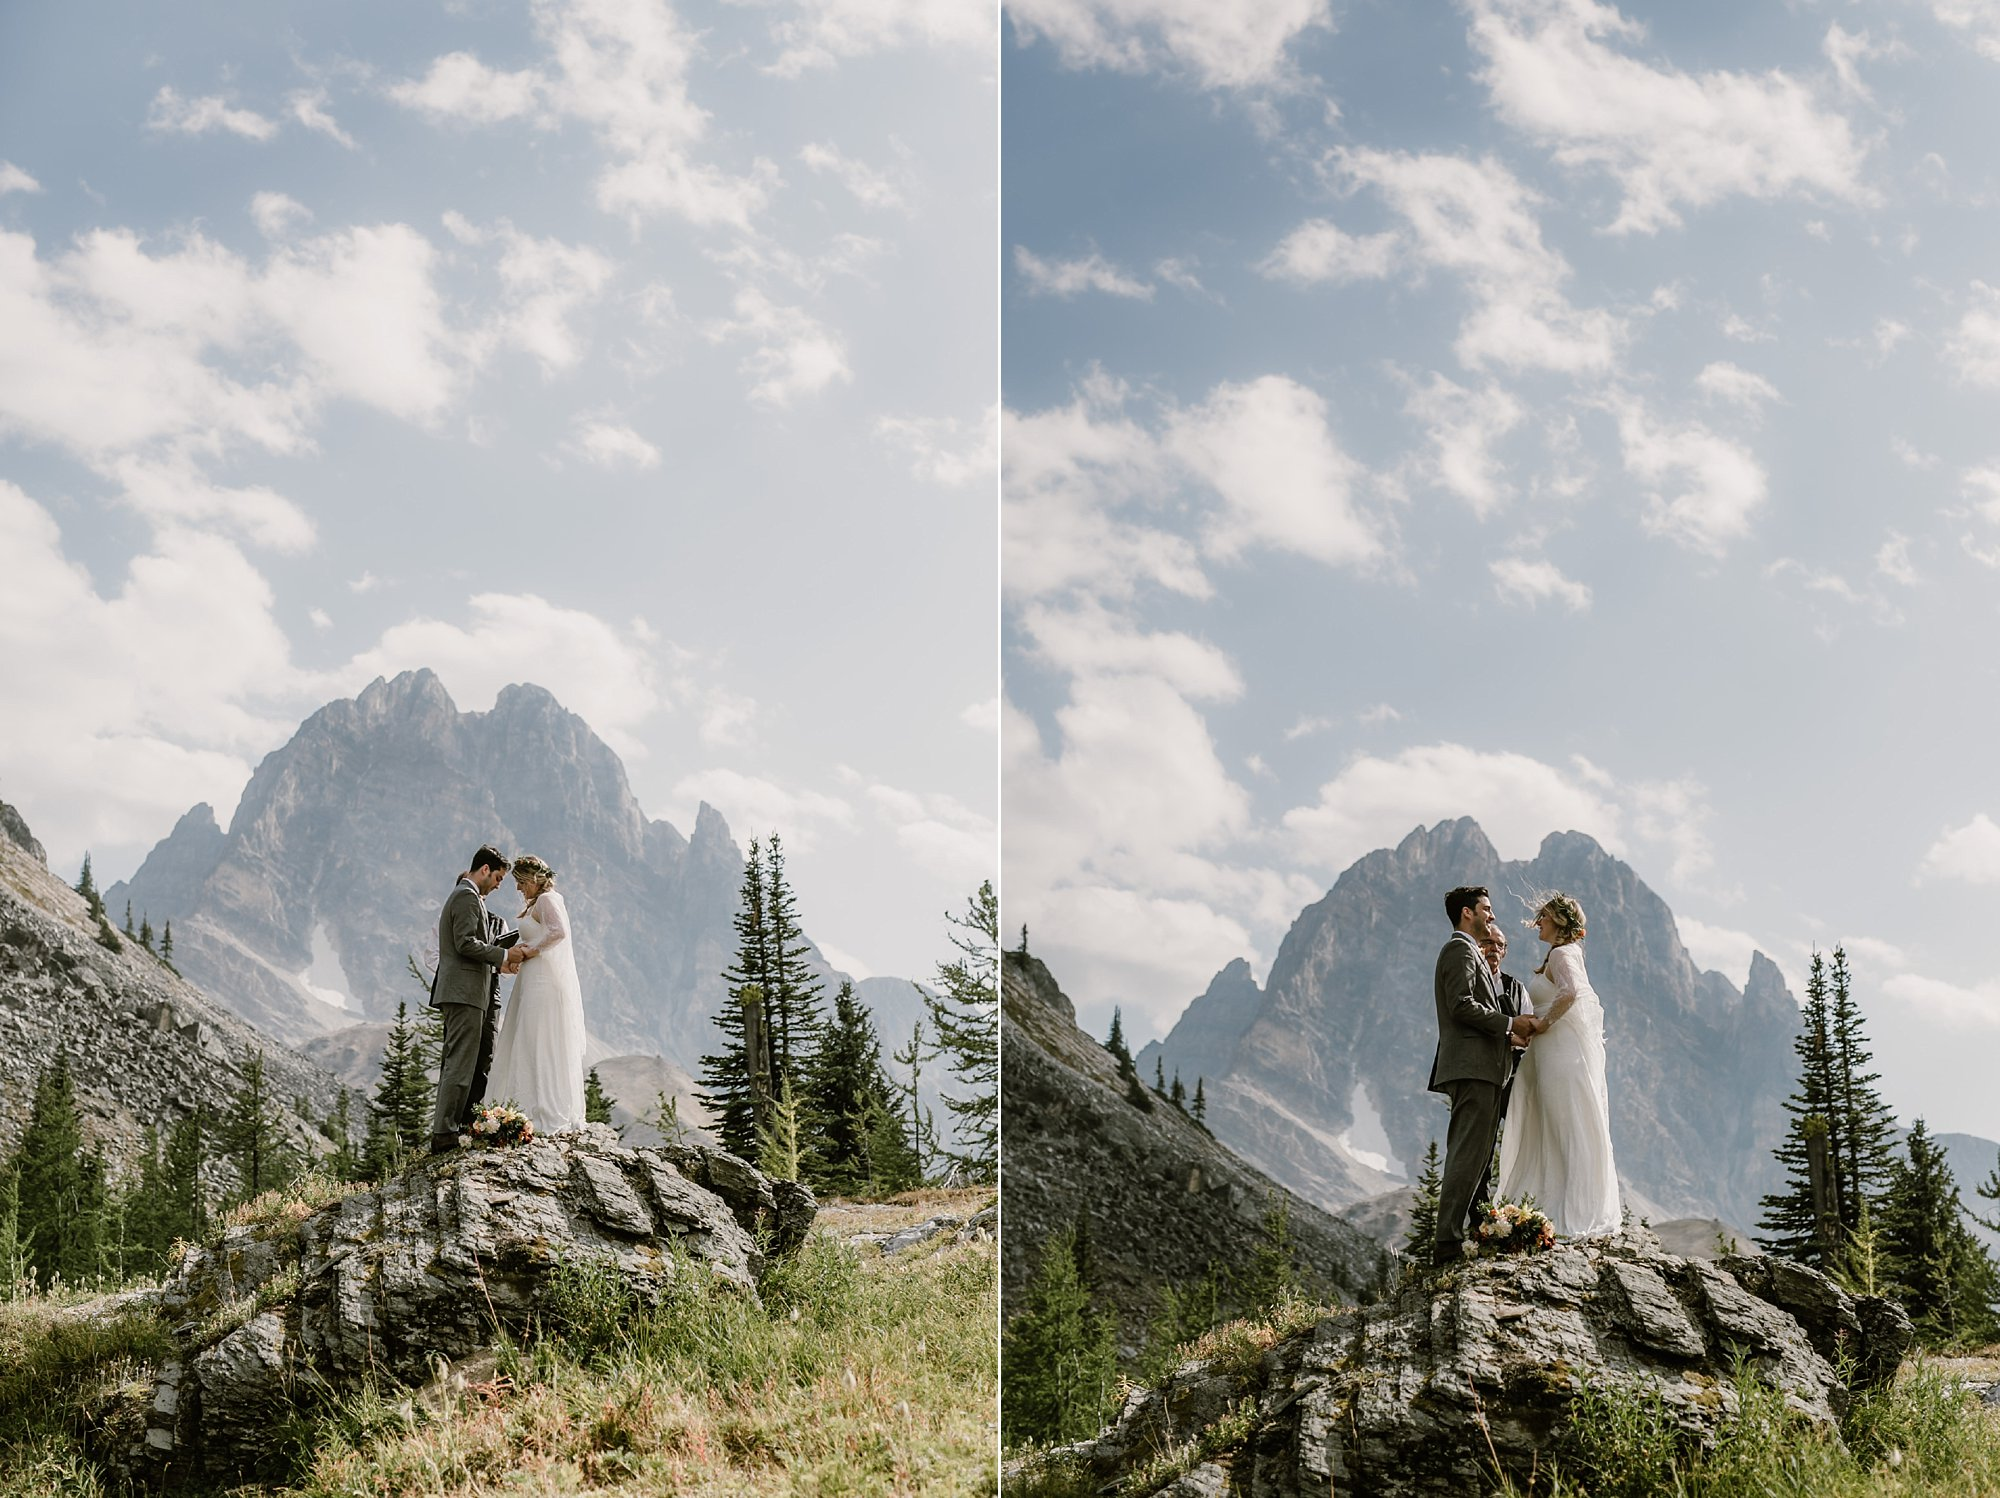 banff-canada-elopement-wedding_0021.jpg